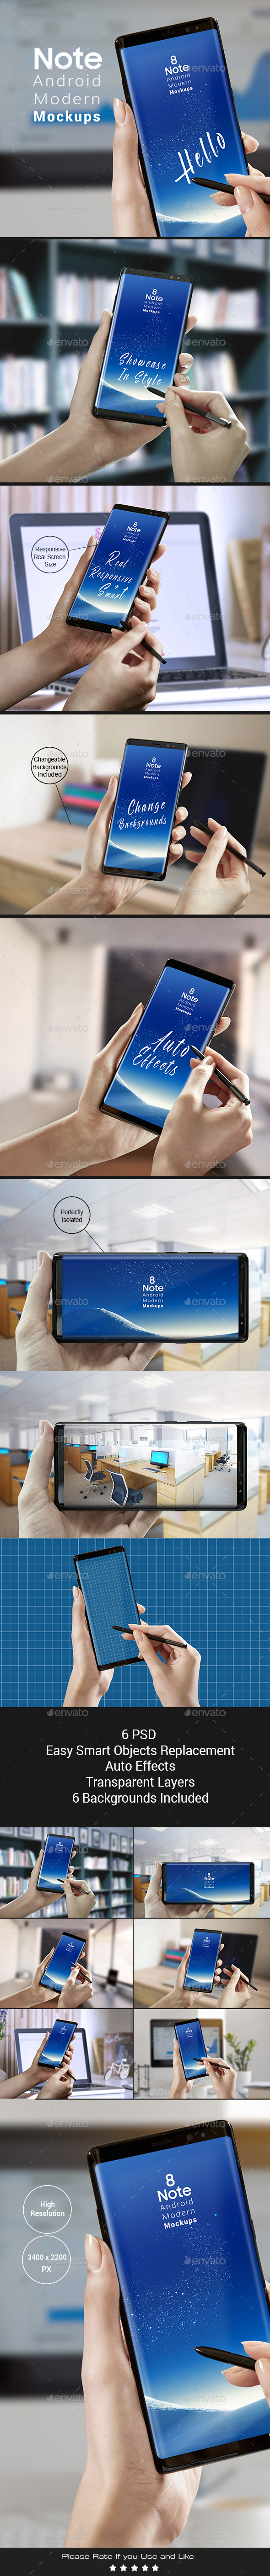 Note 8 Modern Android Mock-ups - Apps Ui Showcase - Mobile Displays